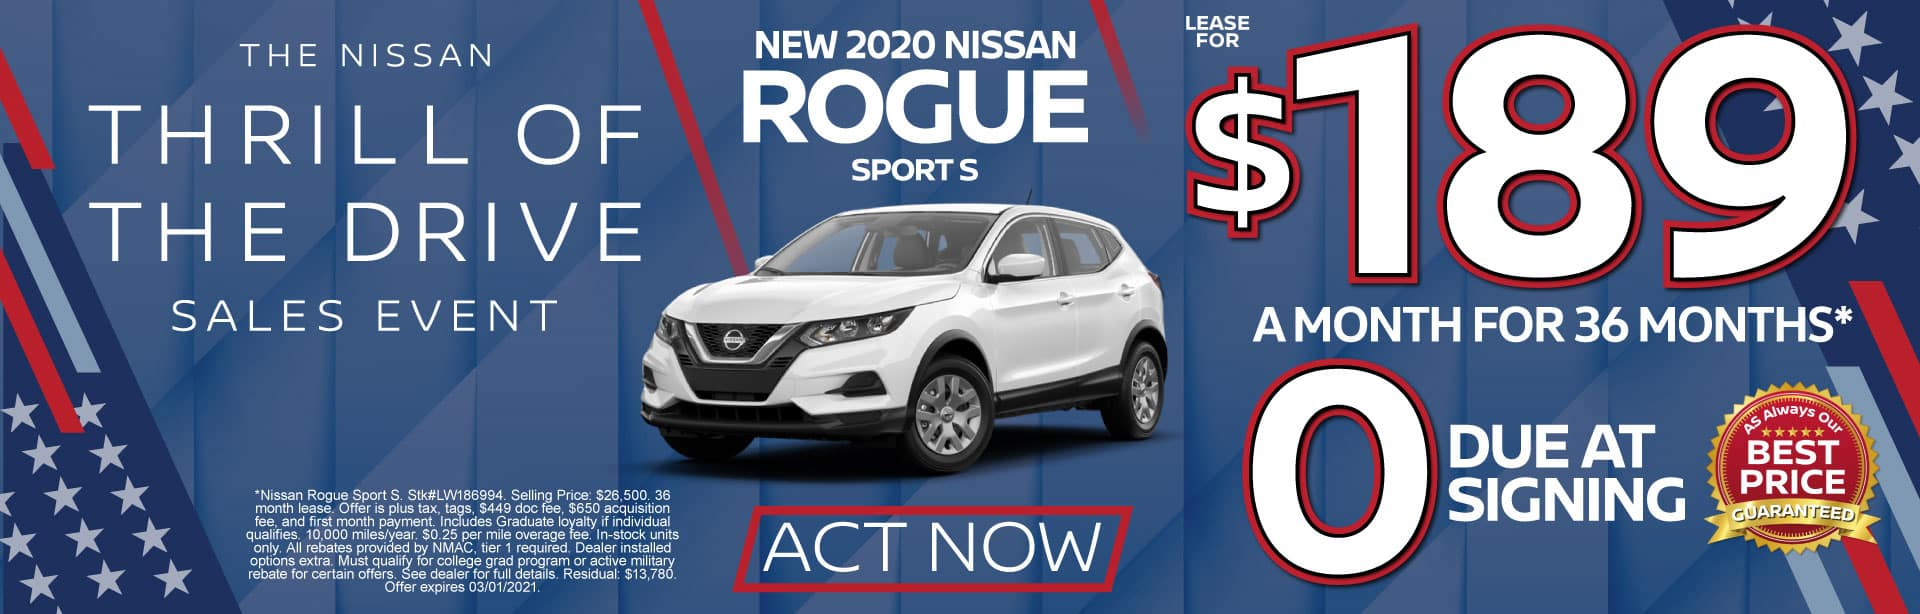 2020 Nissan Rogue Sport S $189 a month for 36 months* ZERO due at signing. Act Now.